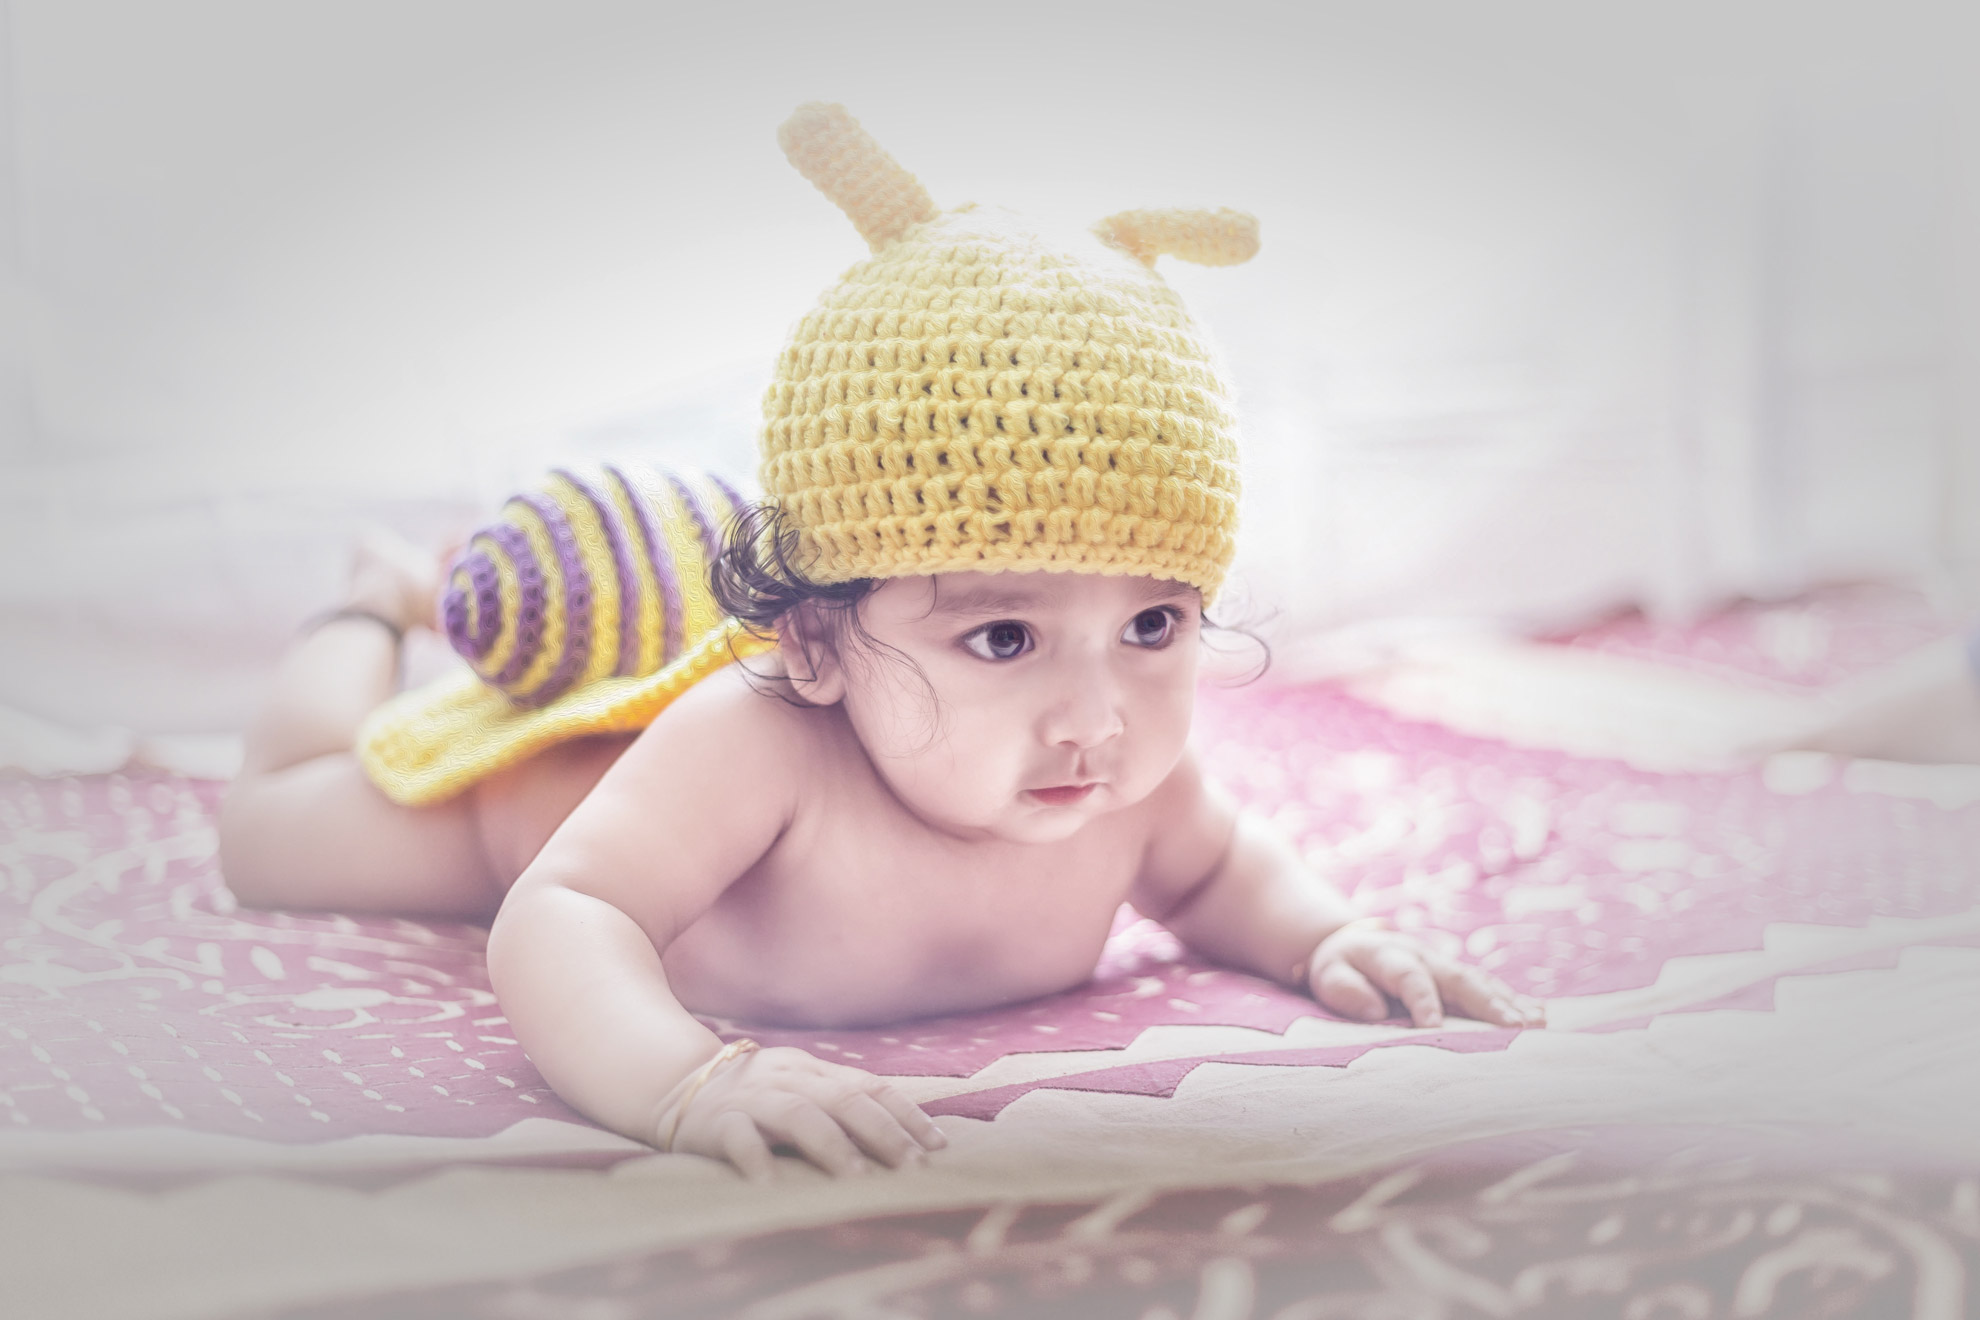 Snail Photoshoot Idea for 6 Month Baby Boy